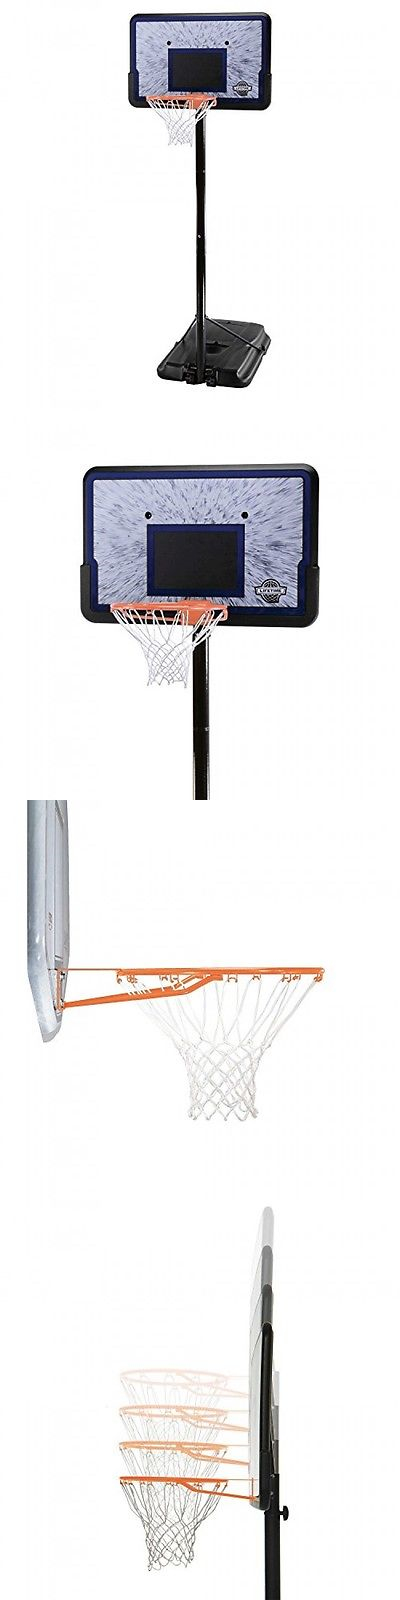 Convert Portable Basketball Goal To Inground Round Designs